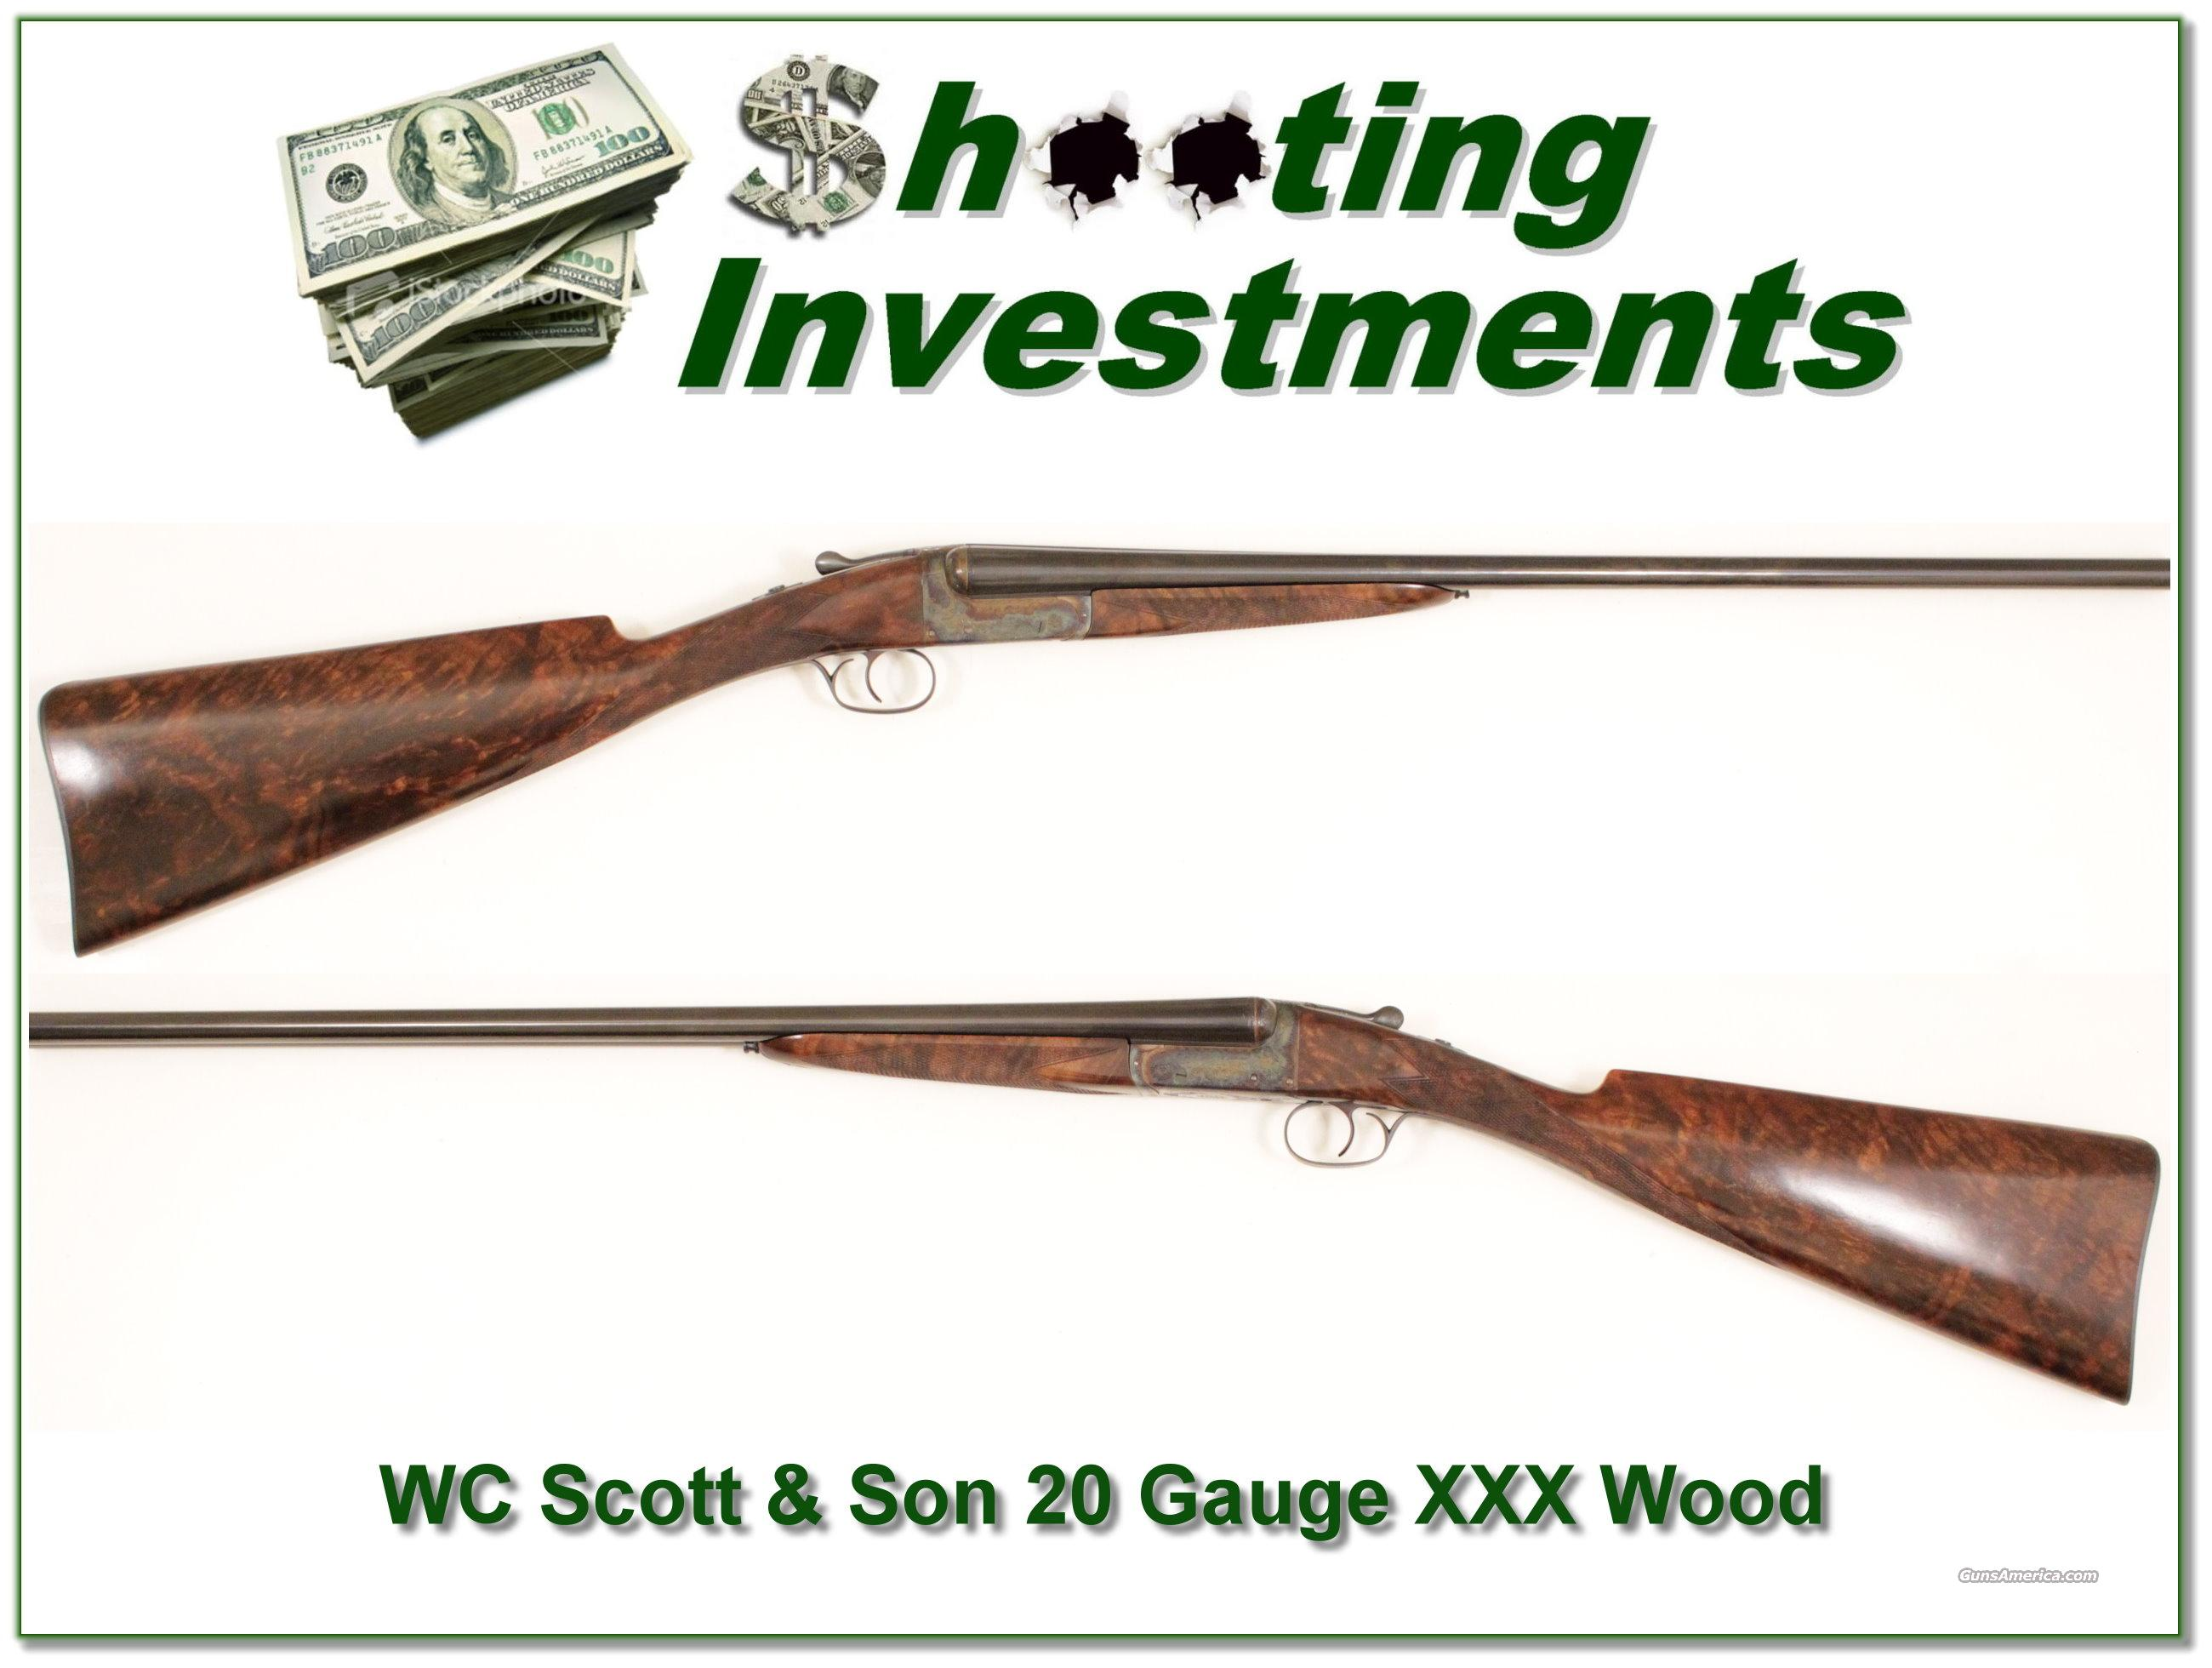 WC Scott & Sons Abercrombie & Fitch 20 Gauge!  Guns > Shotguns > W.C. Scott Shotguns